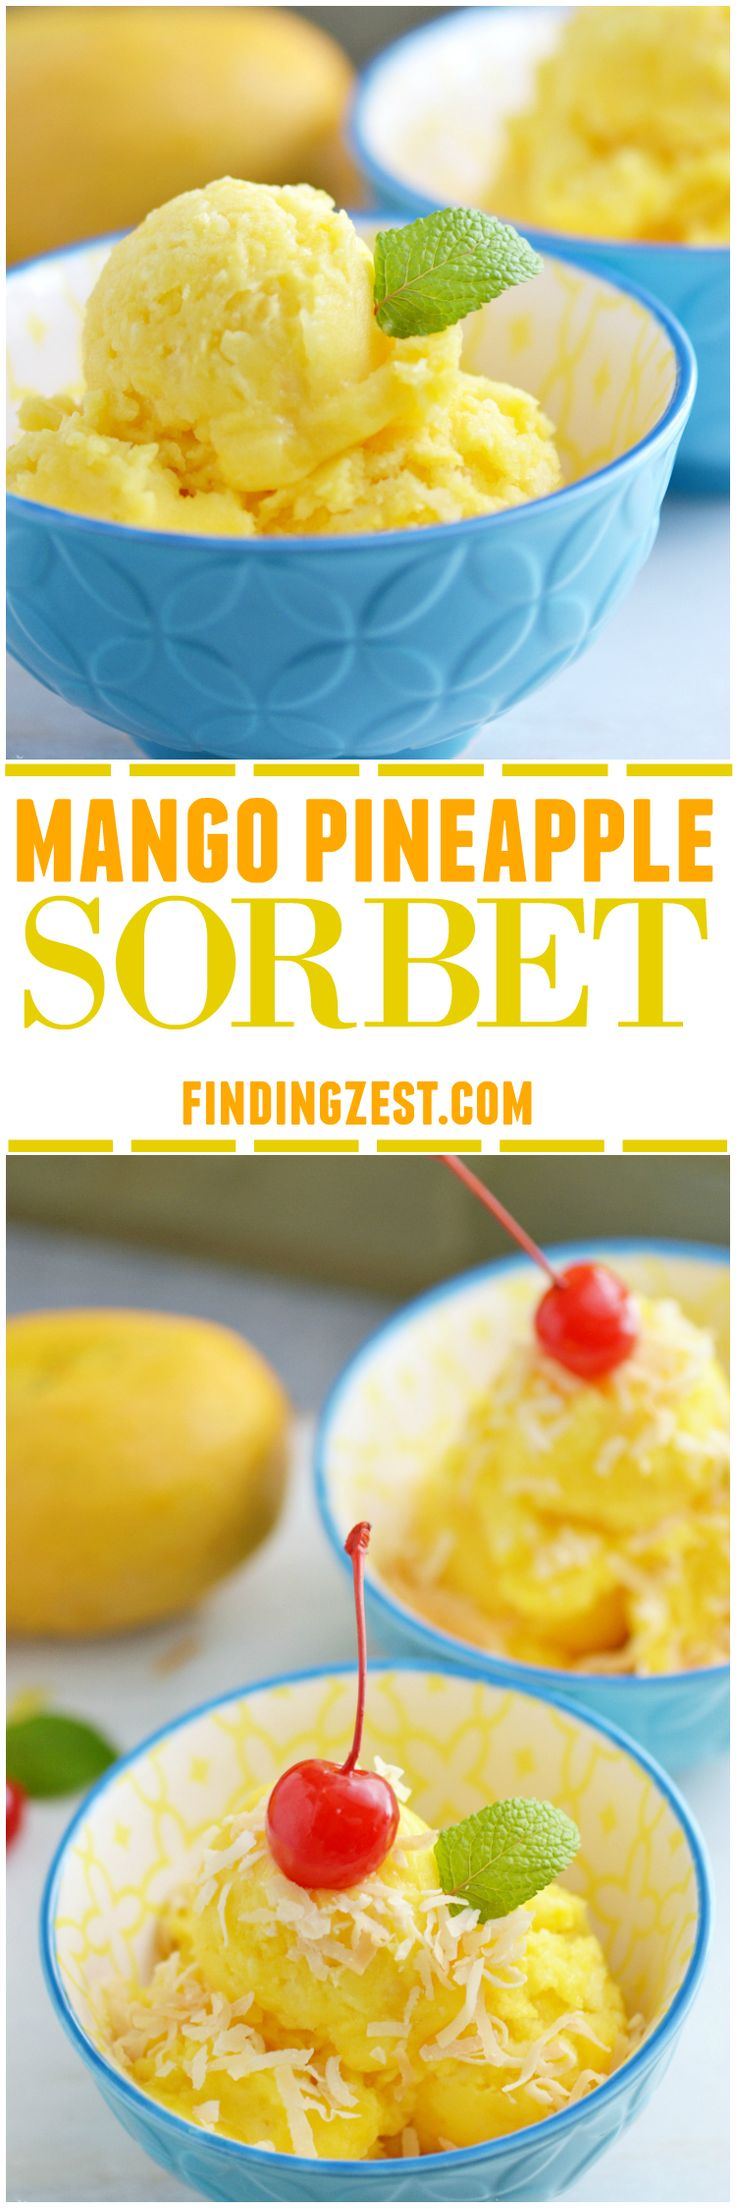 Only three ingredients and a blender are needed to make this homemade Mango Pineapple Sorbet. Add toasted coconut & a cherry for a tropical dessert! Kids will love this healthier alternative to ice cream.